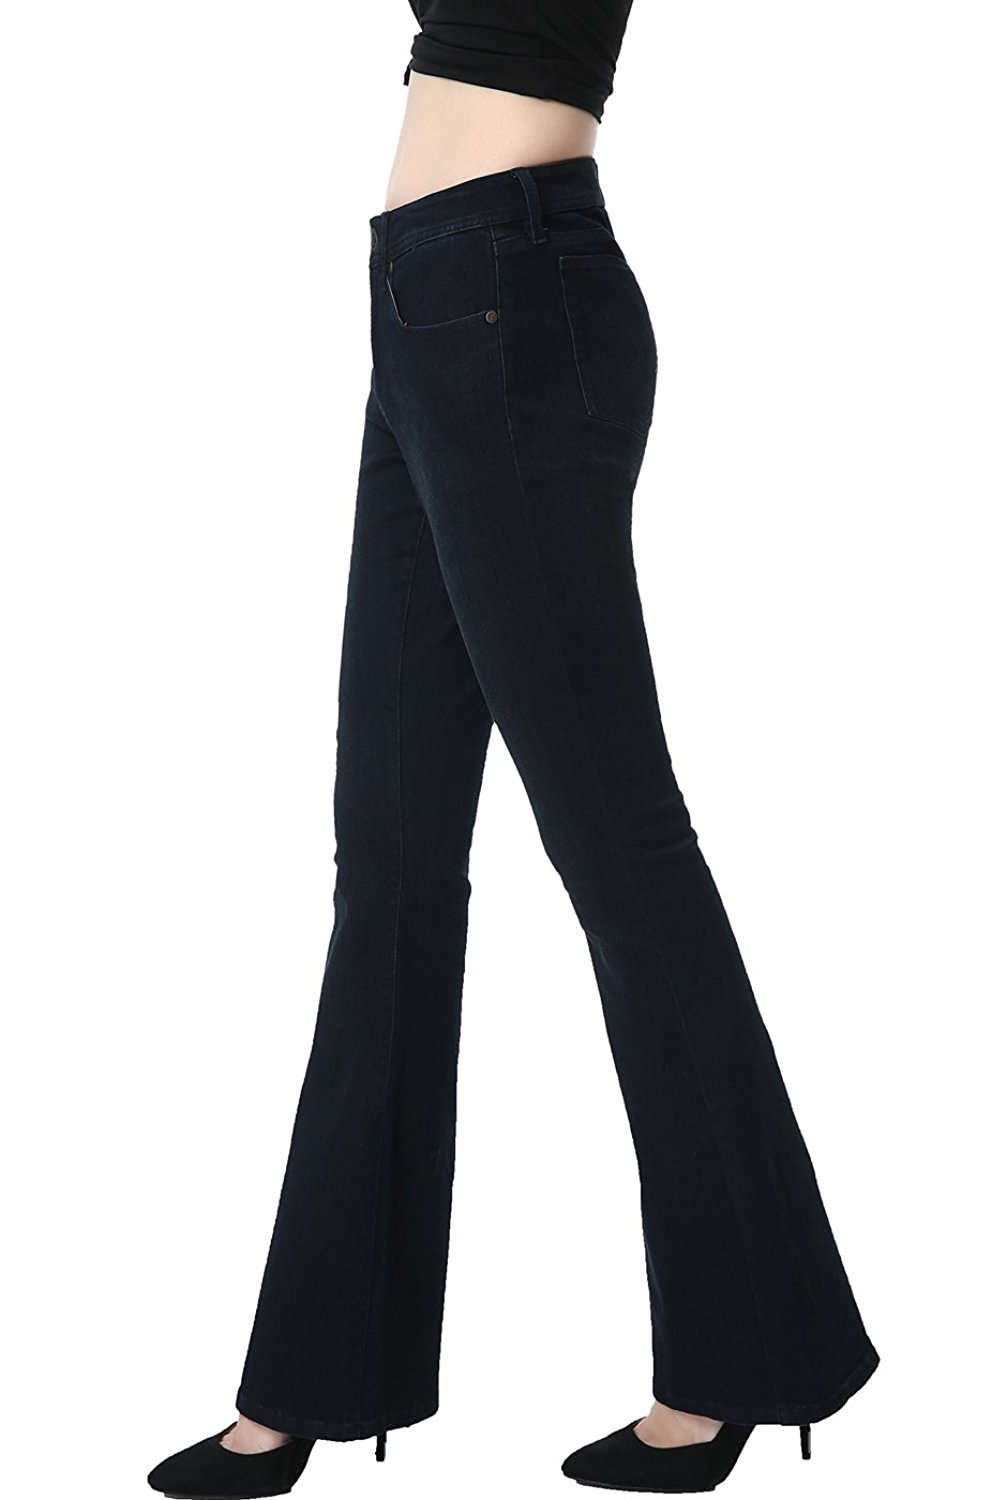 phistic Women's Ultra Stretch Black/Blue Flare Jeans